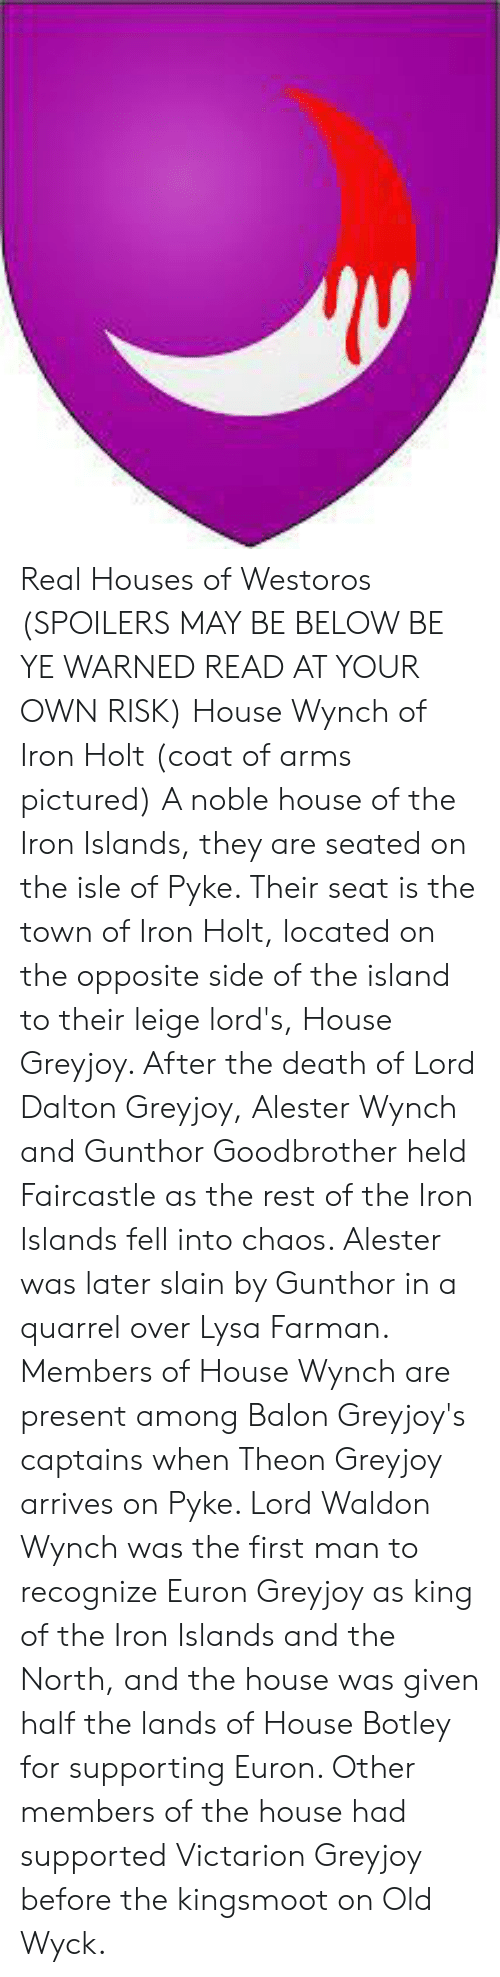 Memes, Death, and House: Real Houses of Westoros (SPOILERS MAY BE BELOW BE YE WARNED READ AT YOUR OWN RISK)  House Wynch of Iron Holt (coat of arms pictured)  A noble house of the Iron Islands, they are seated on the isle of Pyke. Their seat is the town of Iron Holt, located on the opposite side of the island to their leige lord's, House Greyjoy.   After the death of Lord Dalton Greyjoy, Alester Wynch and Gunthor Goodbrother held Faircastle as the rest of the Iron Islands fell into chaos. Alester was later slain by Gunthor in a quarrel over Lysa Farman.   Members of House Wynch are present among Balon Greyjoy's captains when Theon Greyjoy arrives on Pyke. Lord Waldon Wynch was the first man to recognize Euron Greyjoy as king of the Iron Islands and the North, and the house was given half the lands of House Botley for supporting Euron. Other members of the house had supported Victarion Greyjoy before the kingsmoot on Old Wyck.